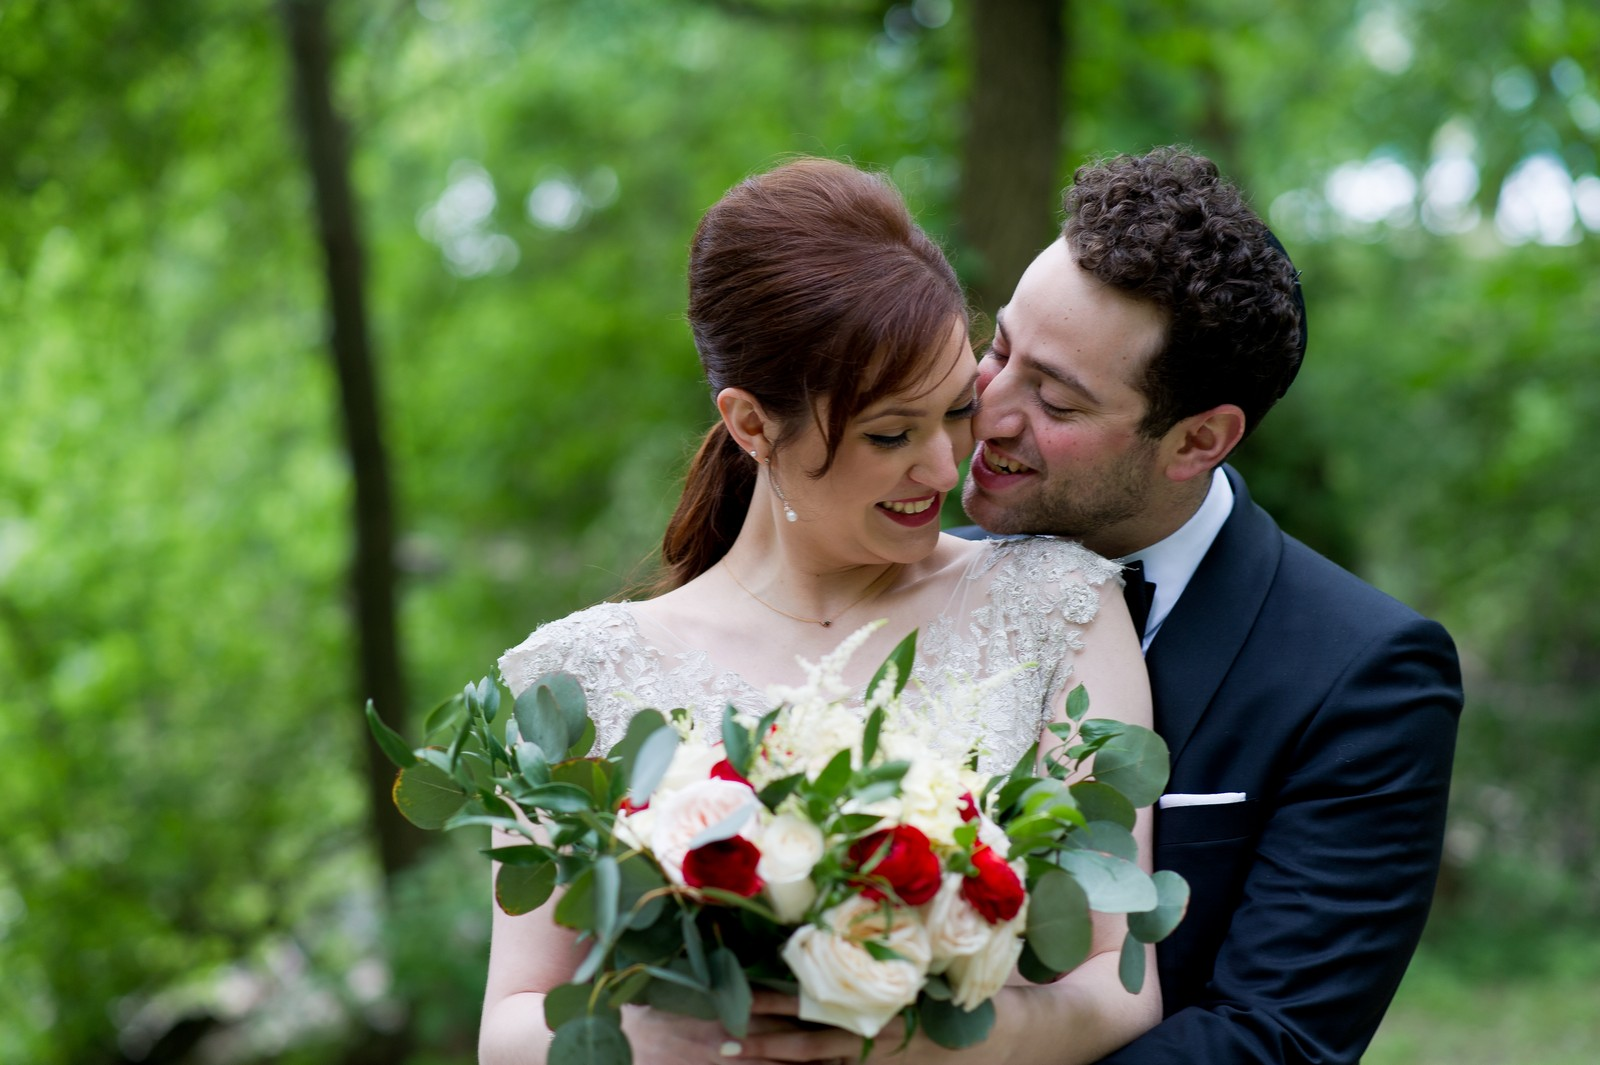 Yoey and Aaron's Memorial Day Modern Jewish Wedding at Anthony's Pier 9, New Windsor, NY Photos by Chaim Schvarcz bride groom portraits couple flowers gown suit